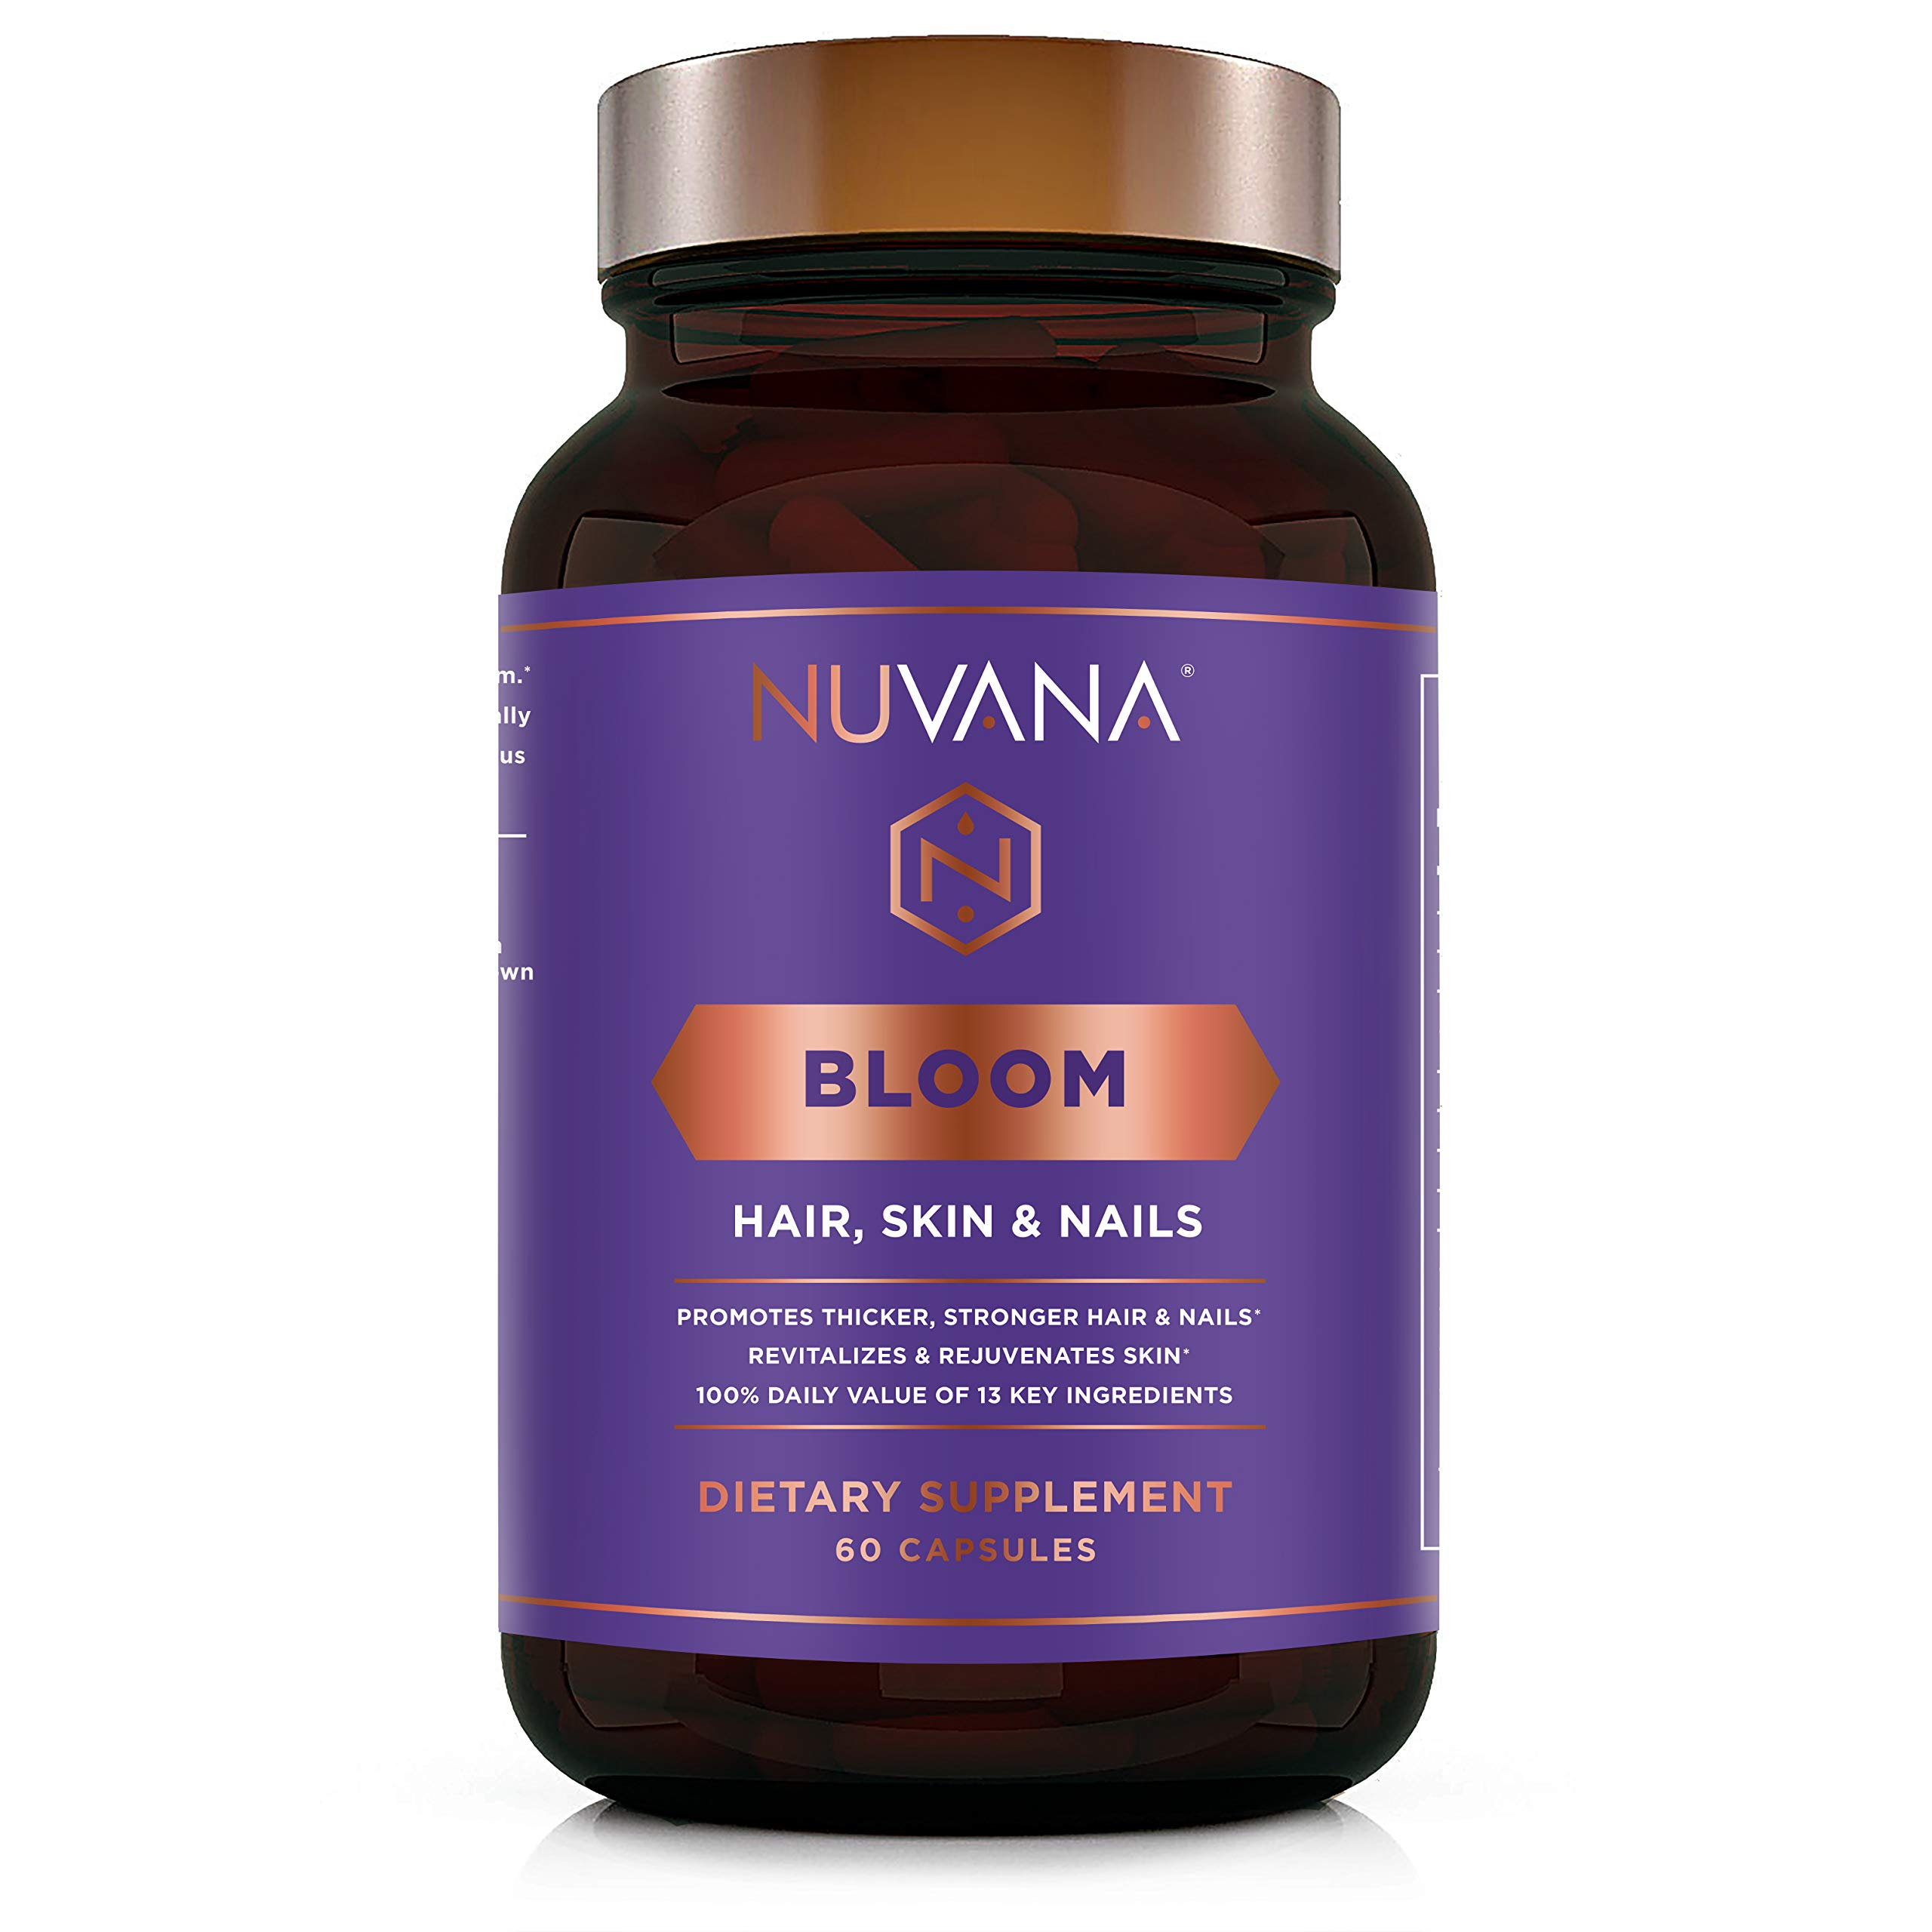 Bloom for Healthy Hair, Skin & Nails | Biotin, Hyaluronic Acid, MSM, Folate, B Complex Vitamins | Boosts Collagen Production | for Growth, Thickening, Strength for Men & Women | 60 Vegan Capsules